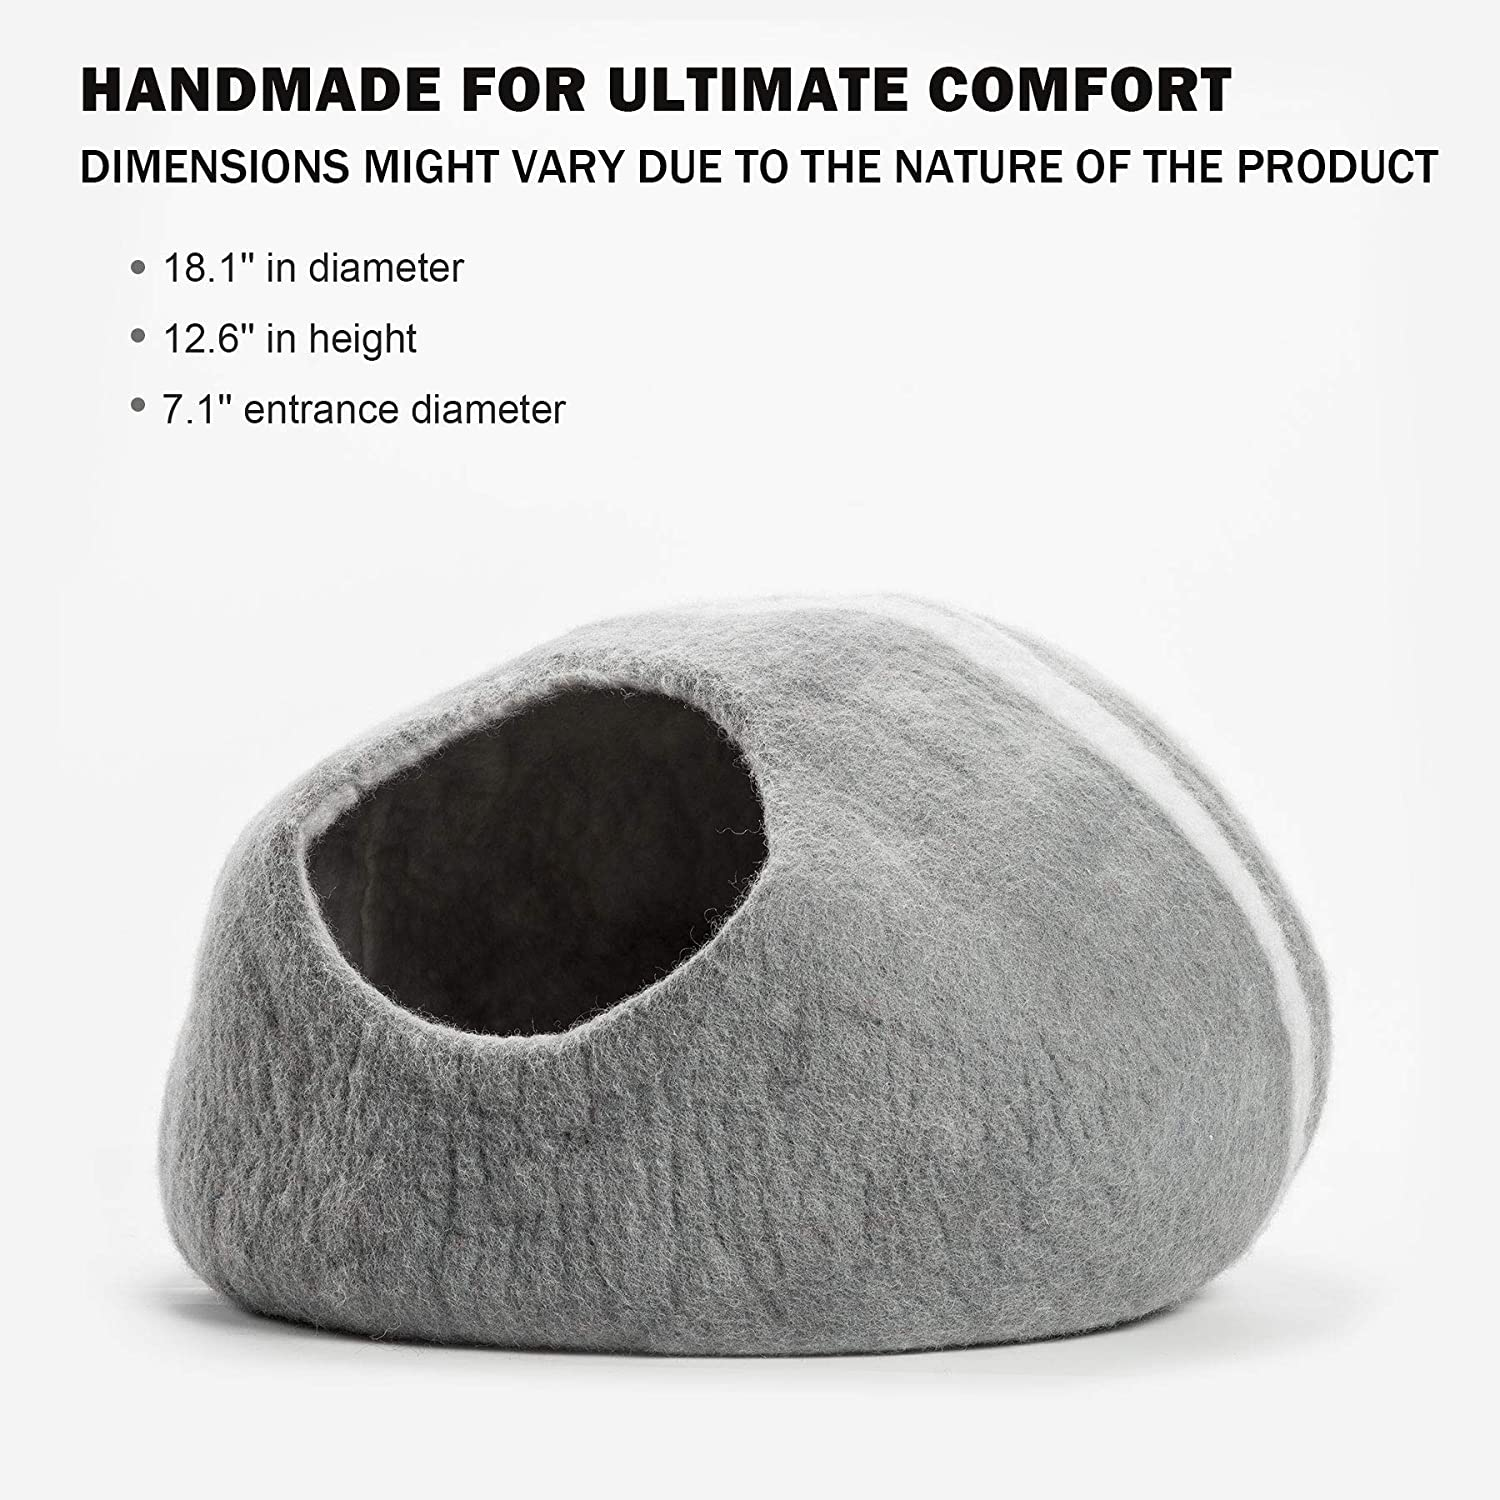 Amazon.com : CO-Z Handcrafted Cat Cave Bed (Large), Felted from 100% Natural Wool, Handmade Furniture for Cats and Kittens, Warm & Cozy Cat Bed (Grey) : Pet ...